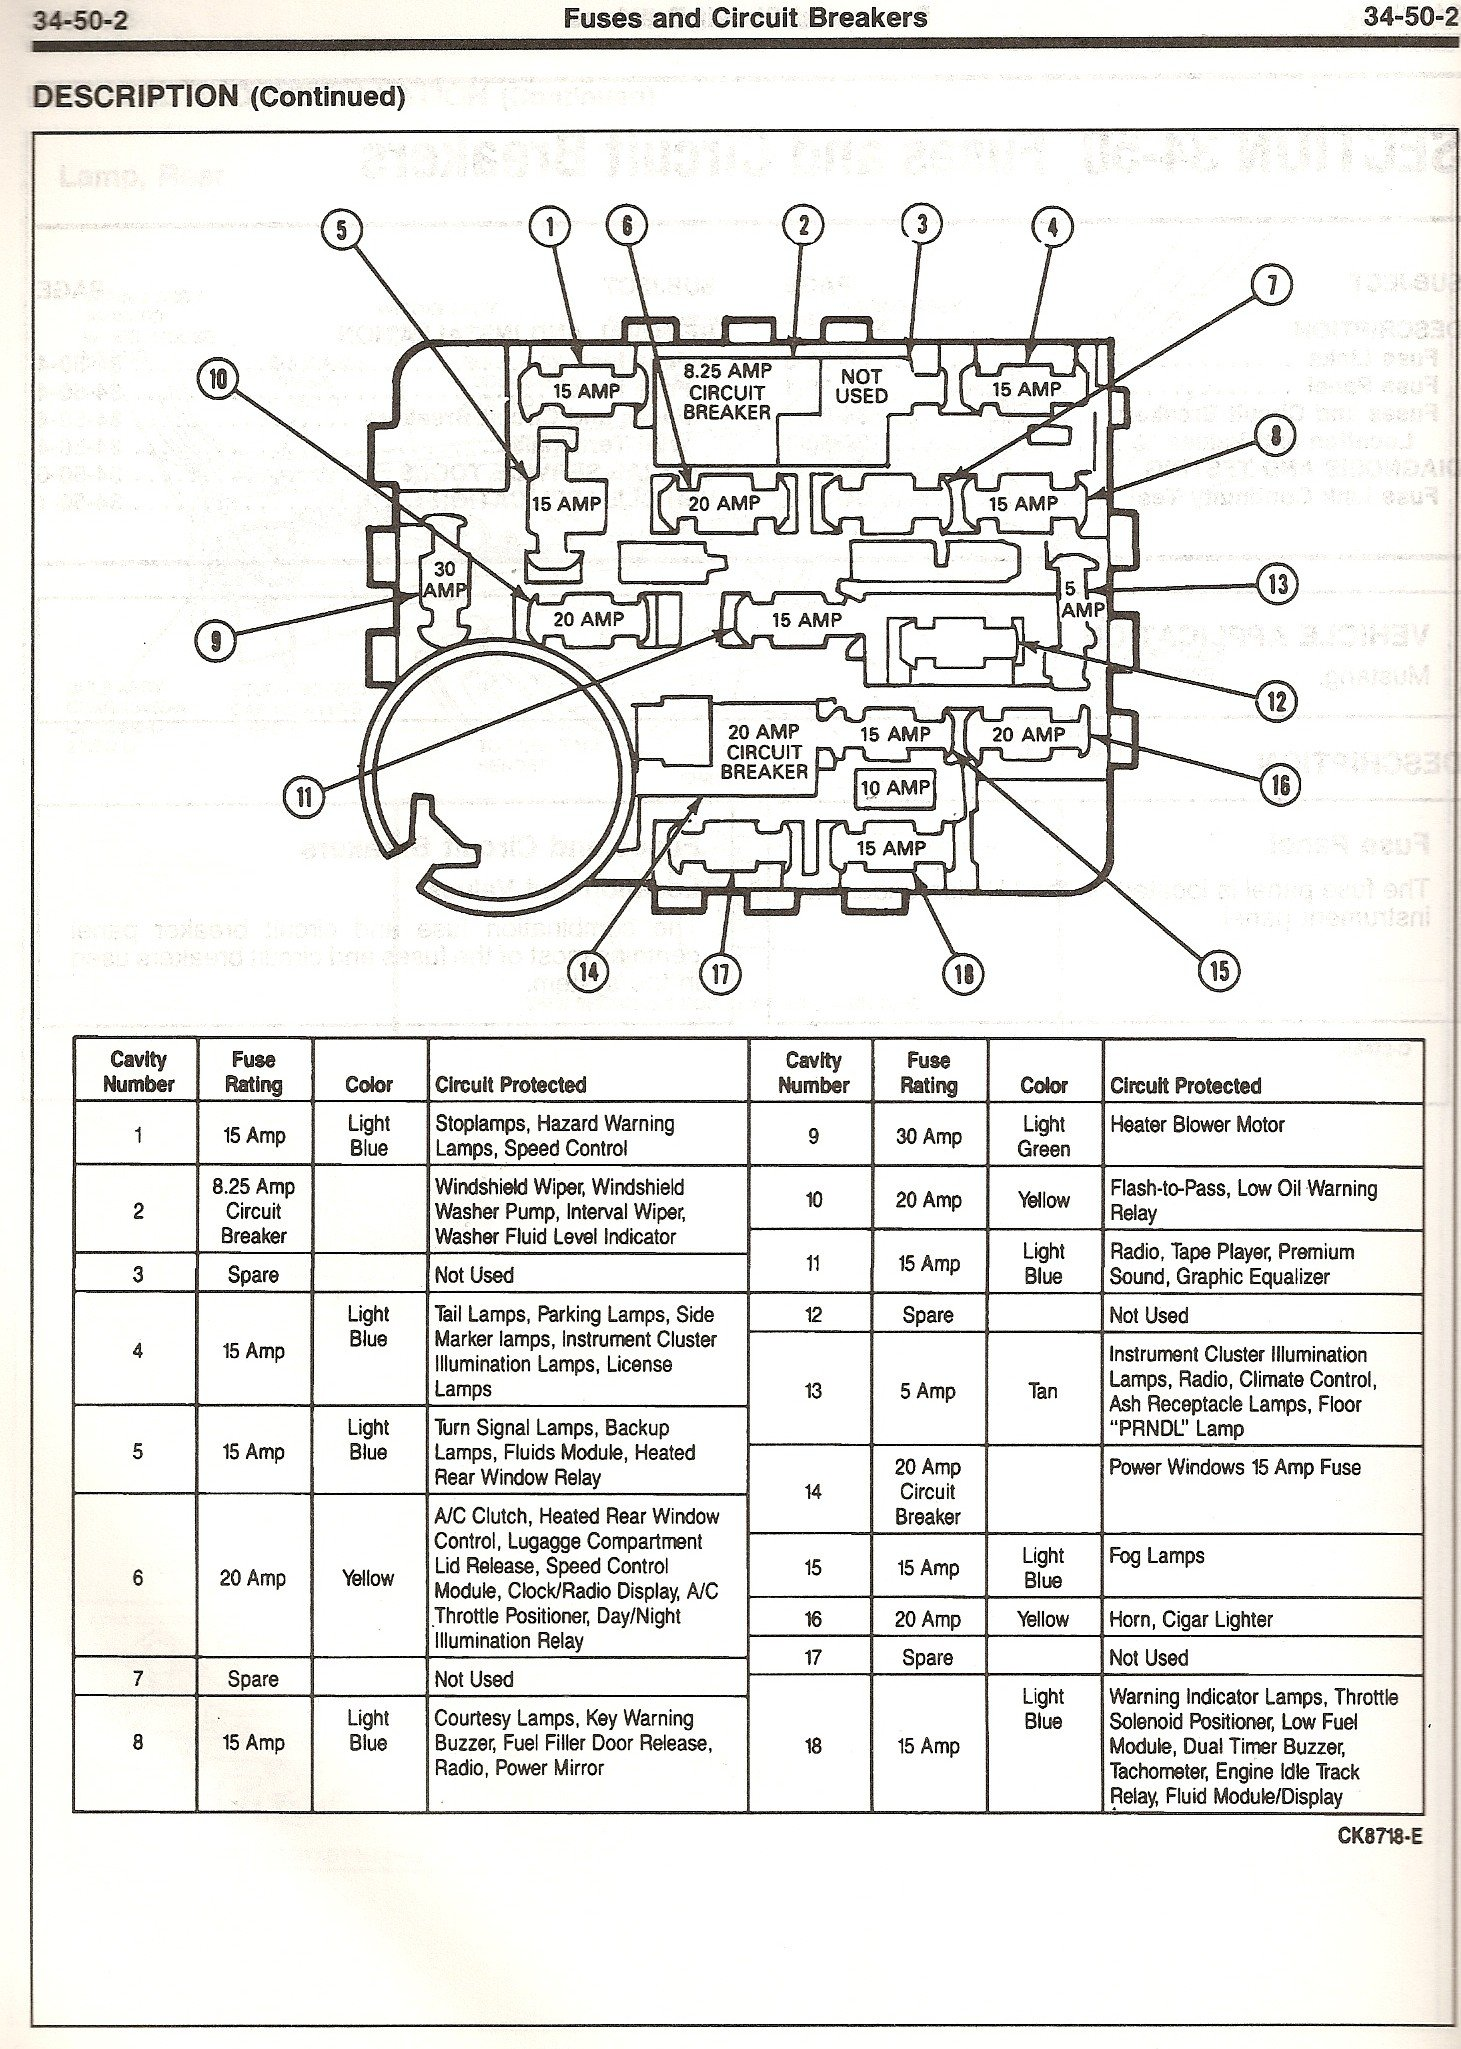 jayco skylark fuse box location free vehicle wiring diagrams u2022 rh narfiyanstudio com 2005 Mustang Fuse Box Diagram 1999 Mustang Fuse Box Diagram